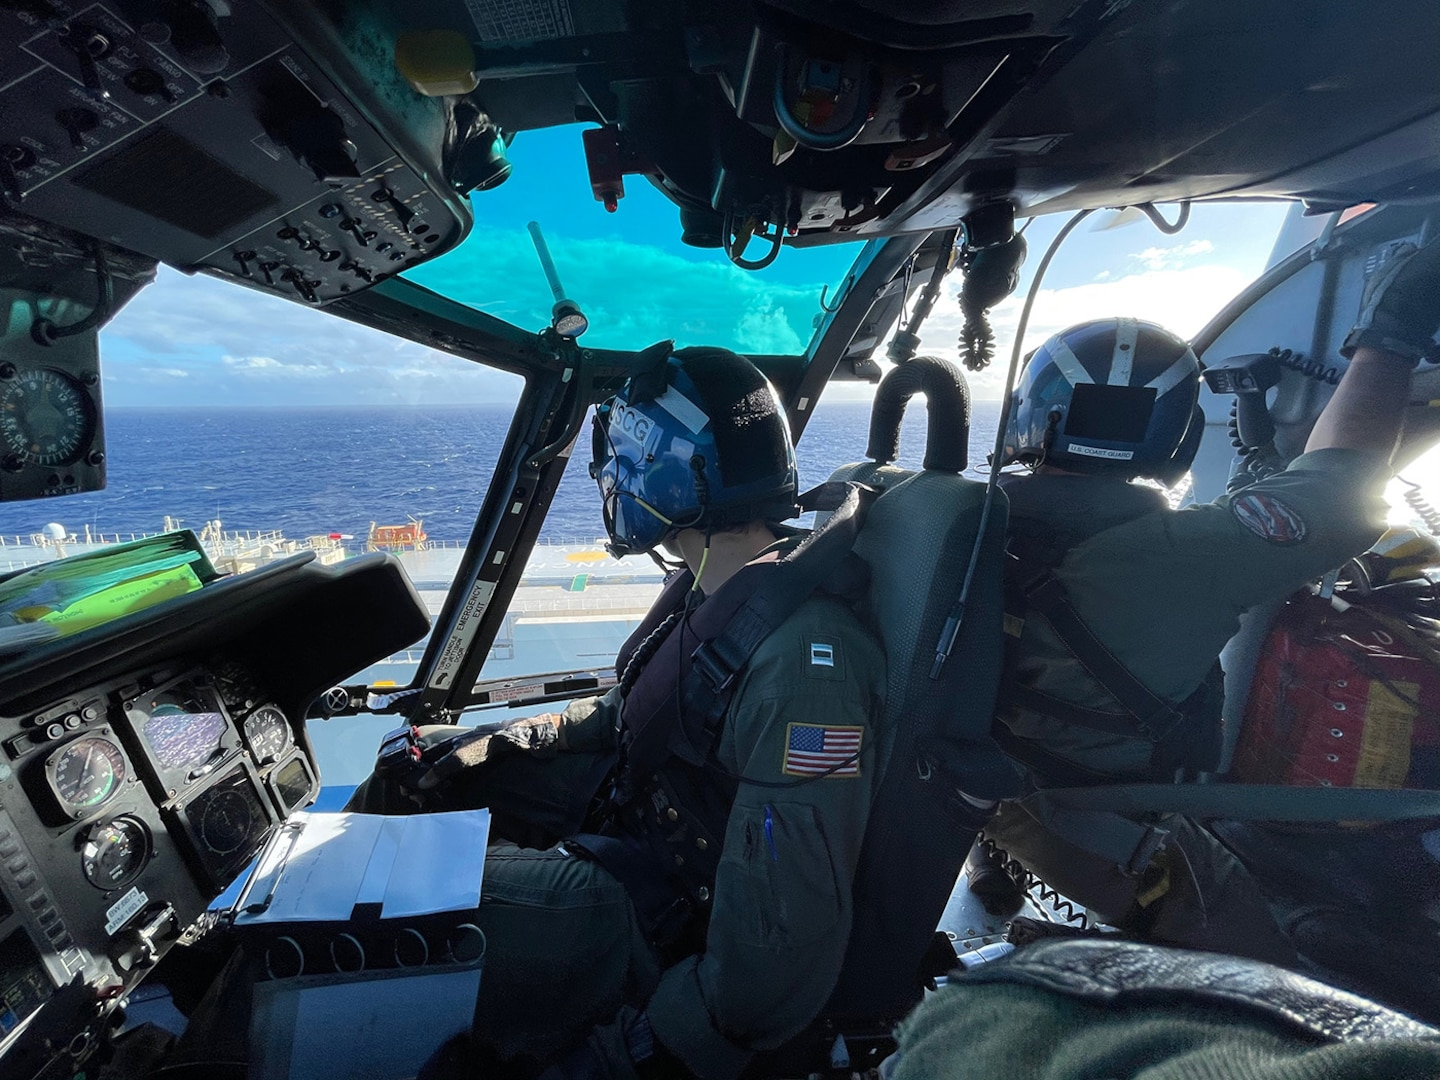 Coast Guard medevac mariner from cargo vessel off Oahu